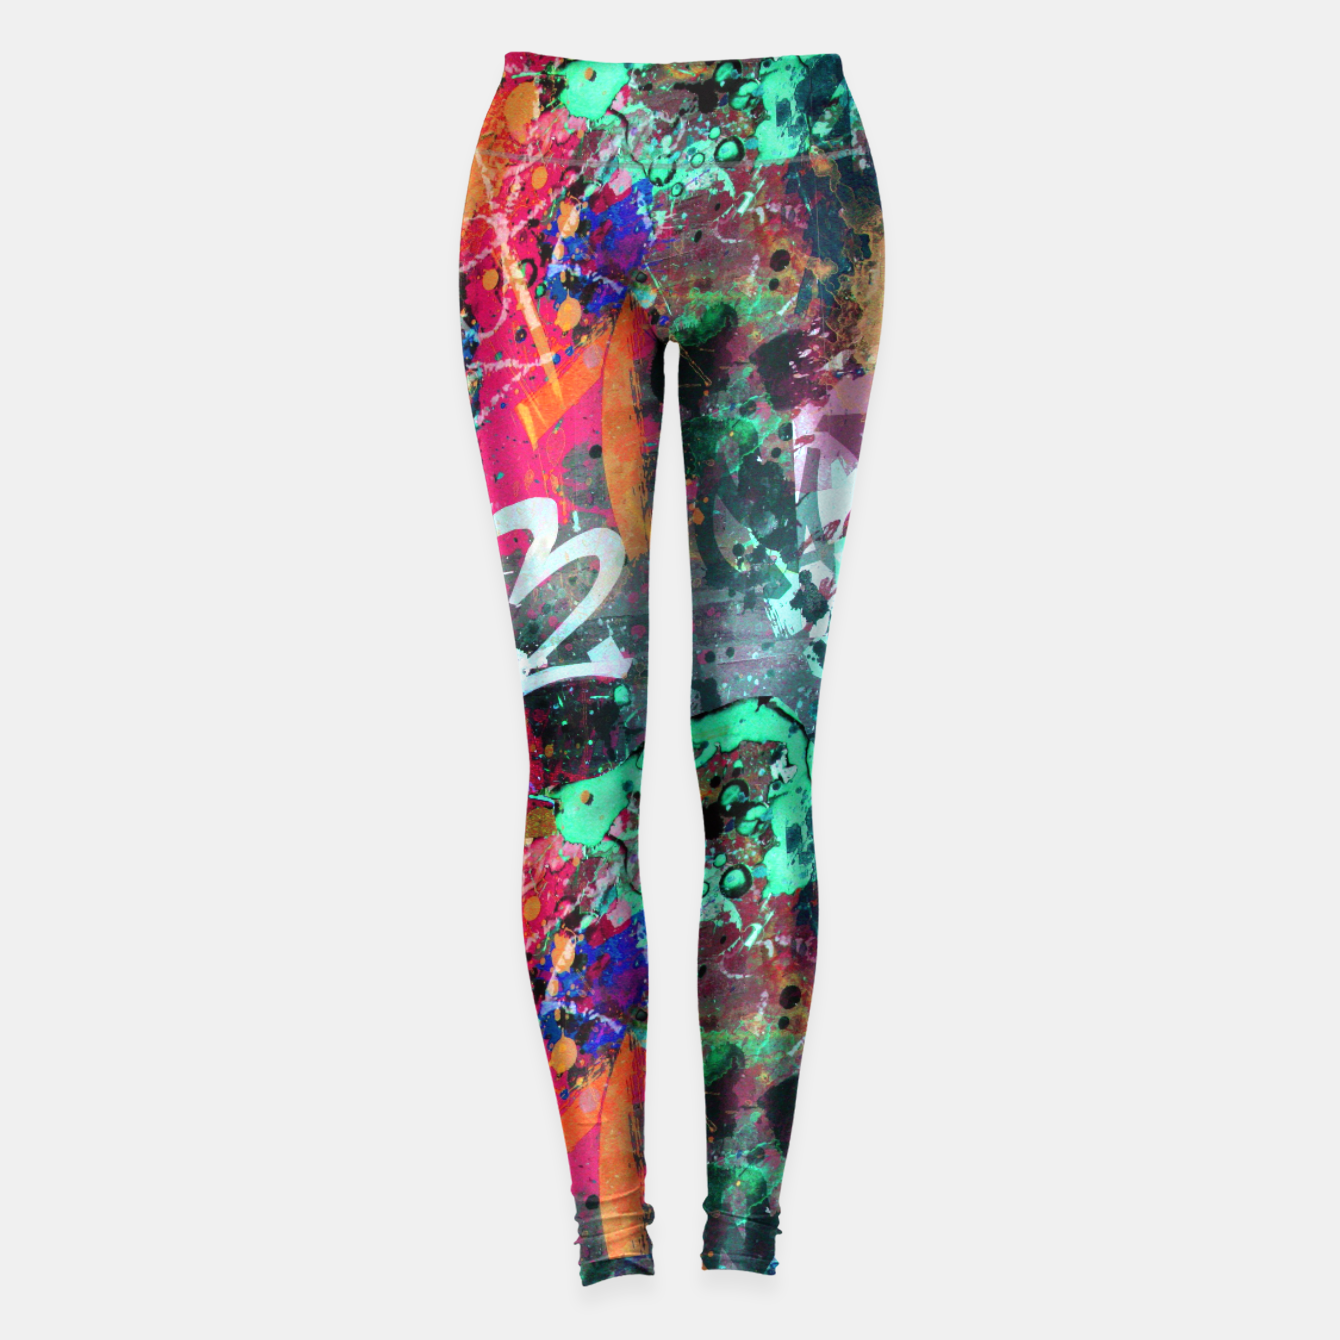 8366c68403b036 Graffiti and Paint Splatter Leggings, Live Heroes